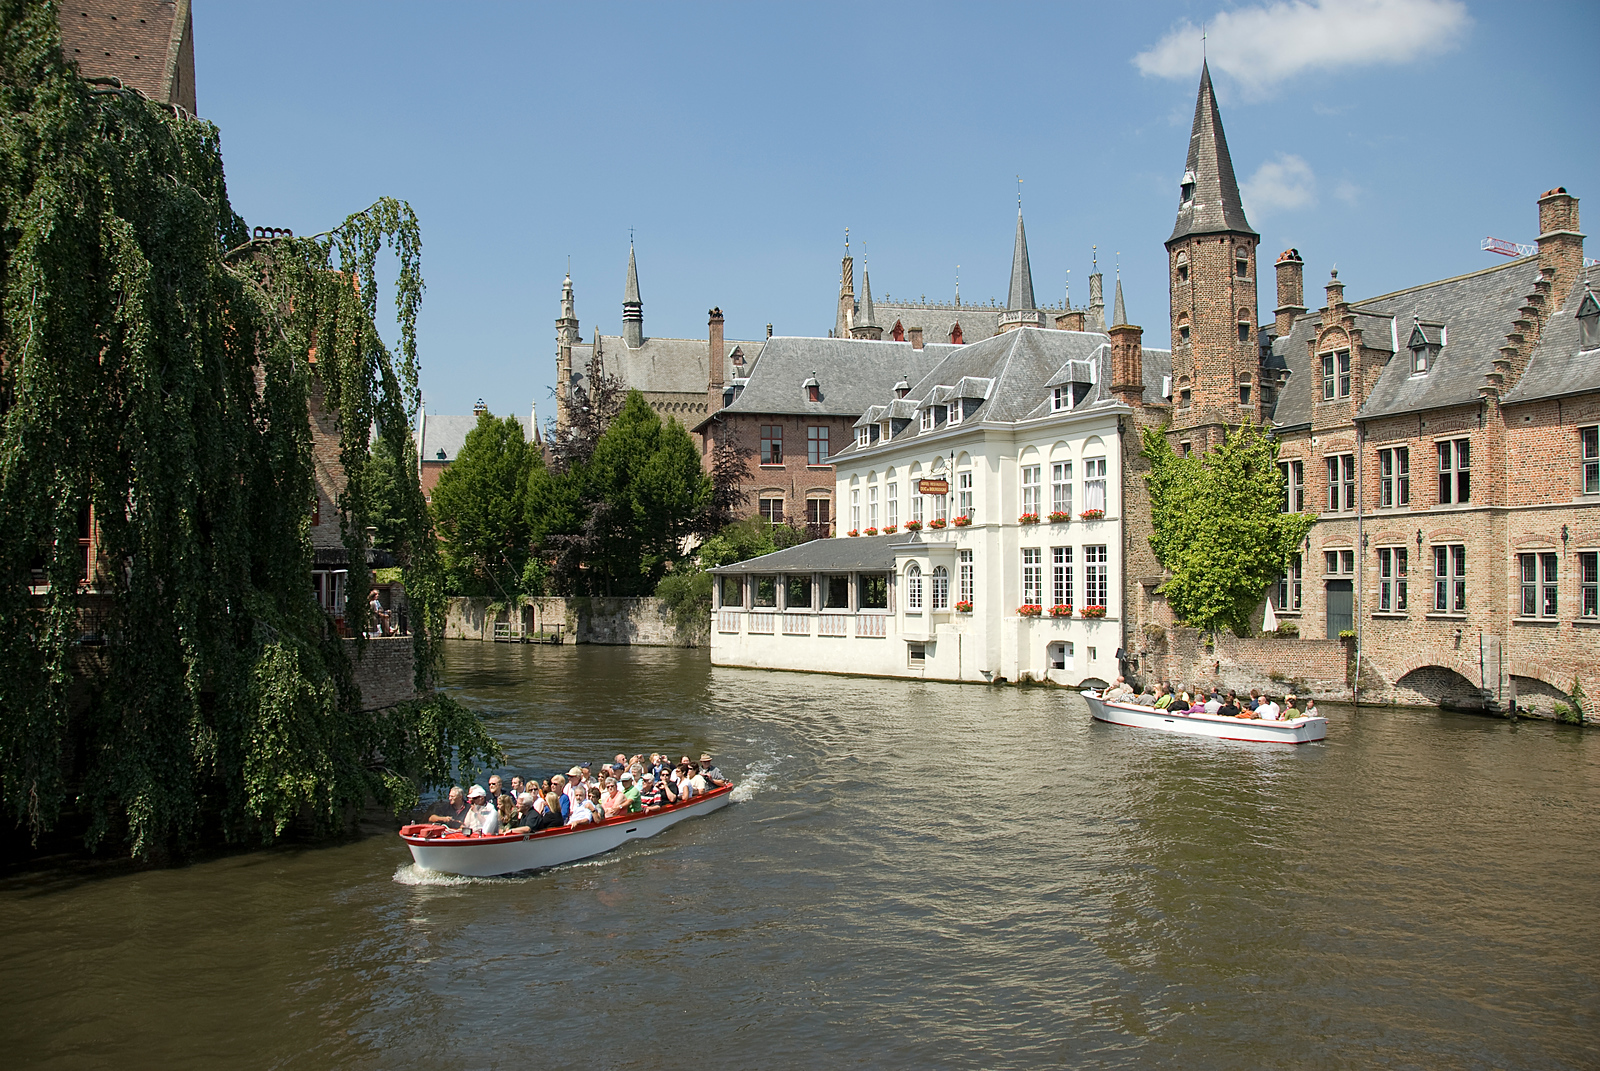 Historic Center of Brugge - UNESCO World Heritage Site